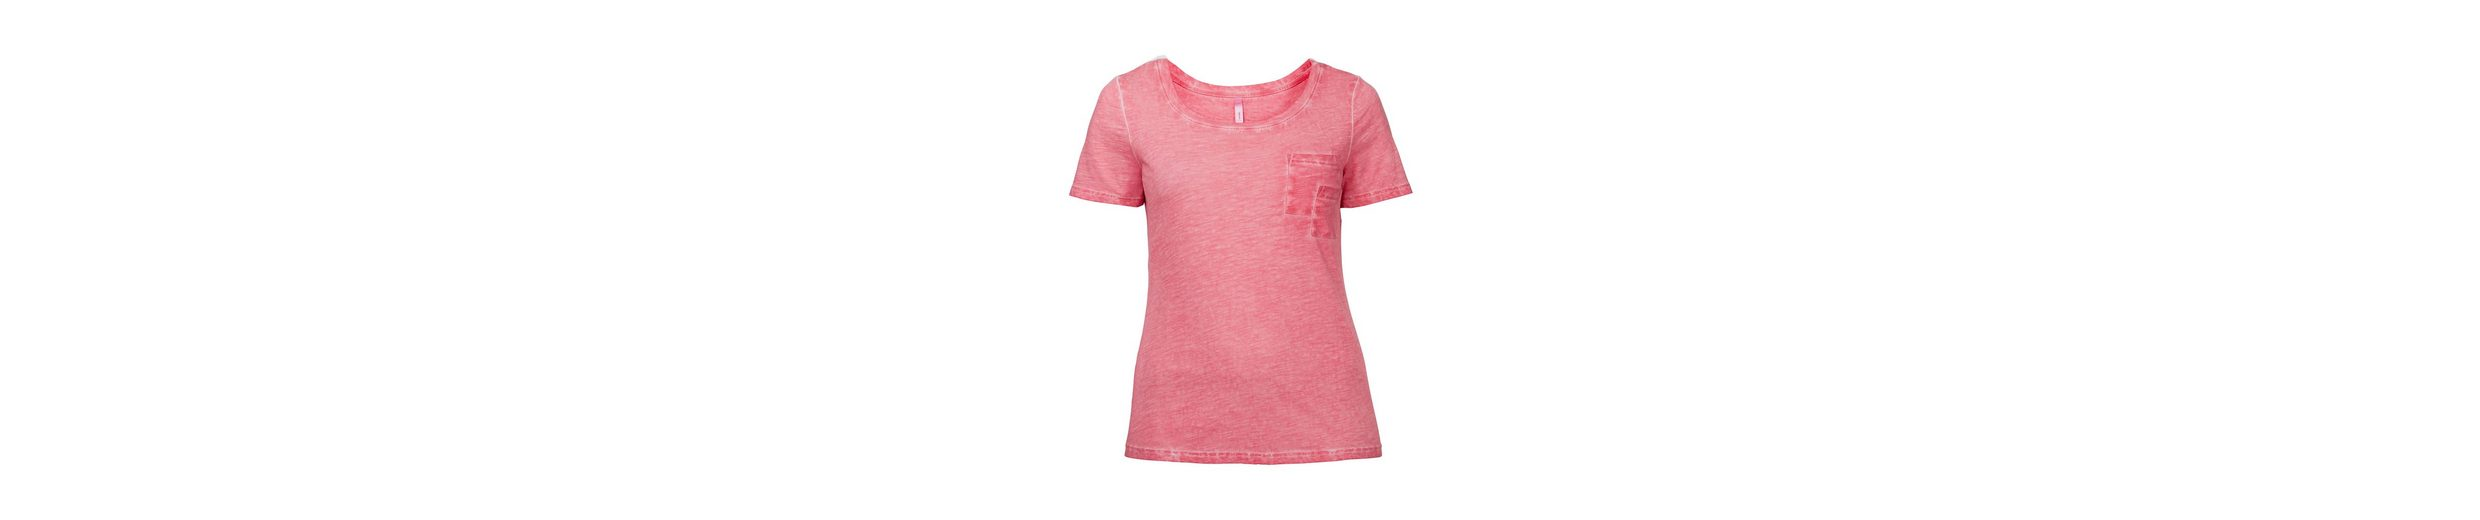 sheego Casual T-Shirt, in Oil-washed-Optik